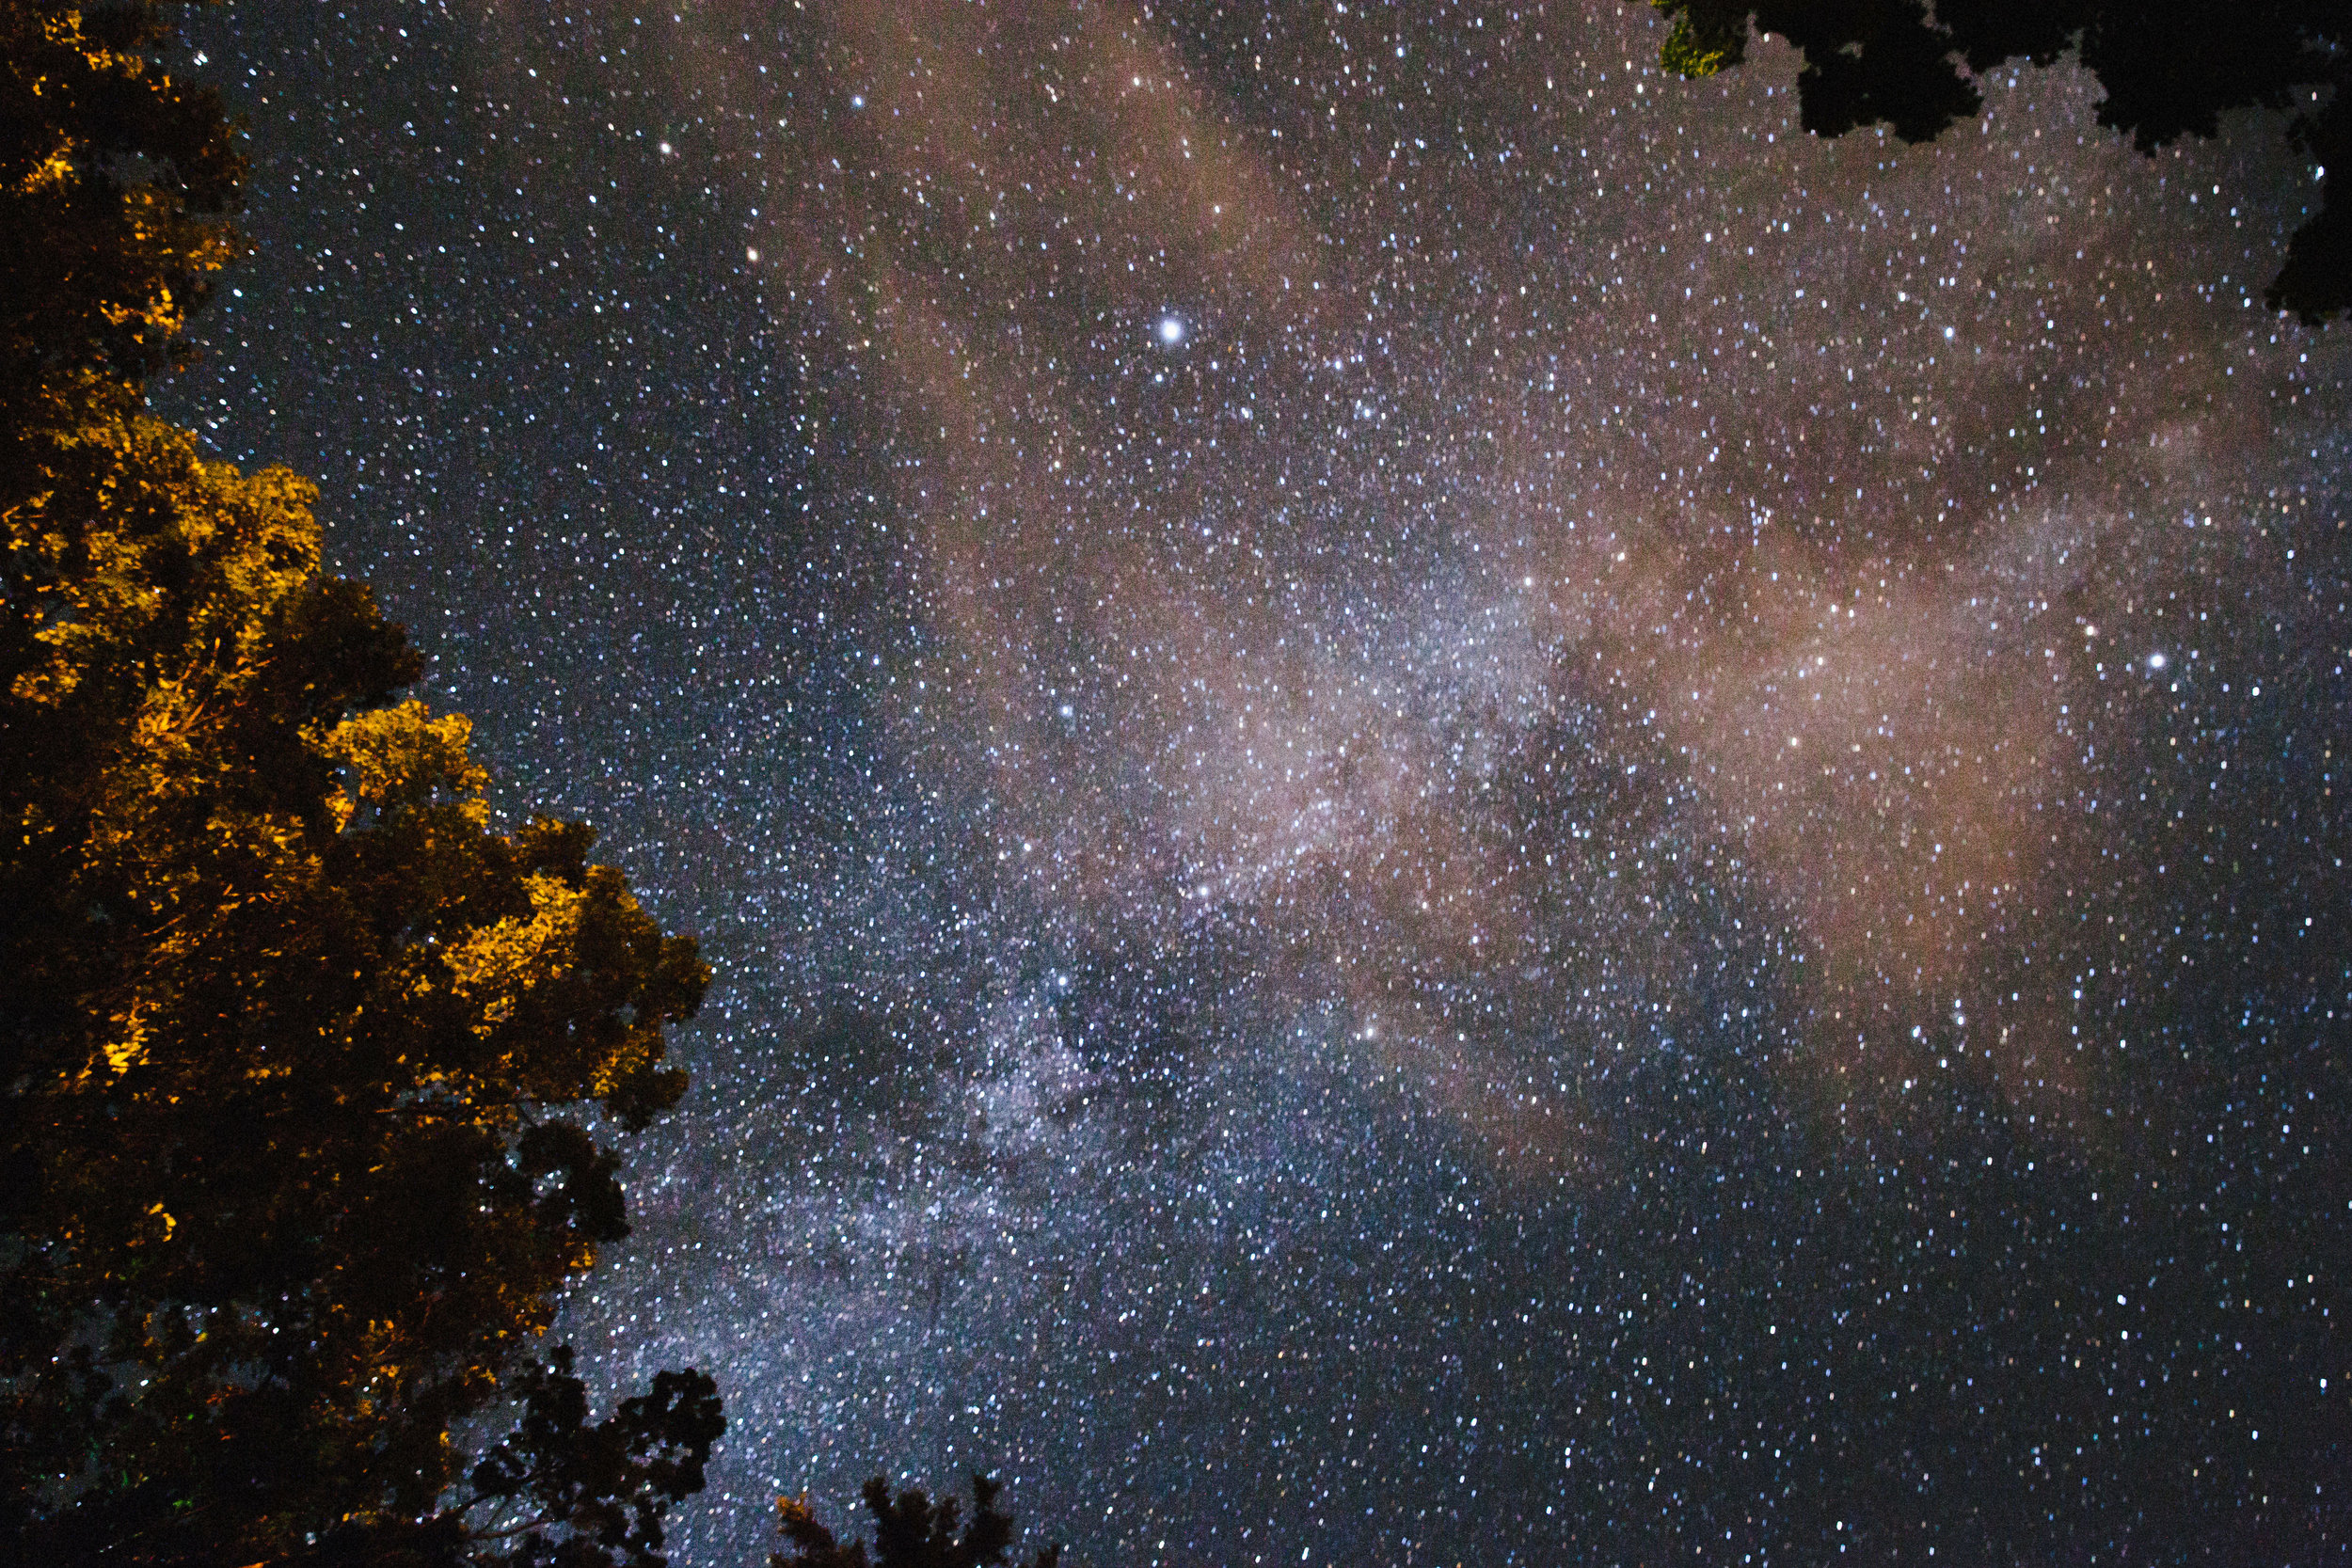 Sept 21 - Stargazing - When/Where: 7-9pmCoffin Ridge Boutique WinerySeptember is another magical month for tilting your head toward the skies. Soak in the magic of the stars on one of the best patios in Ontario, while sipping a glass of wine. Sounds pretty ok, right? Join the Bluewater Astronomical Society as they guide you through the stars.